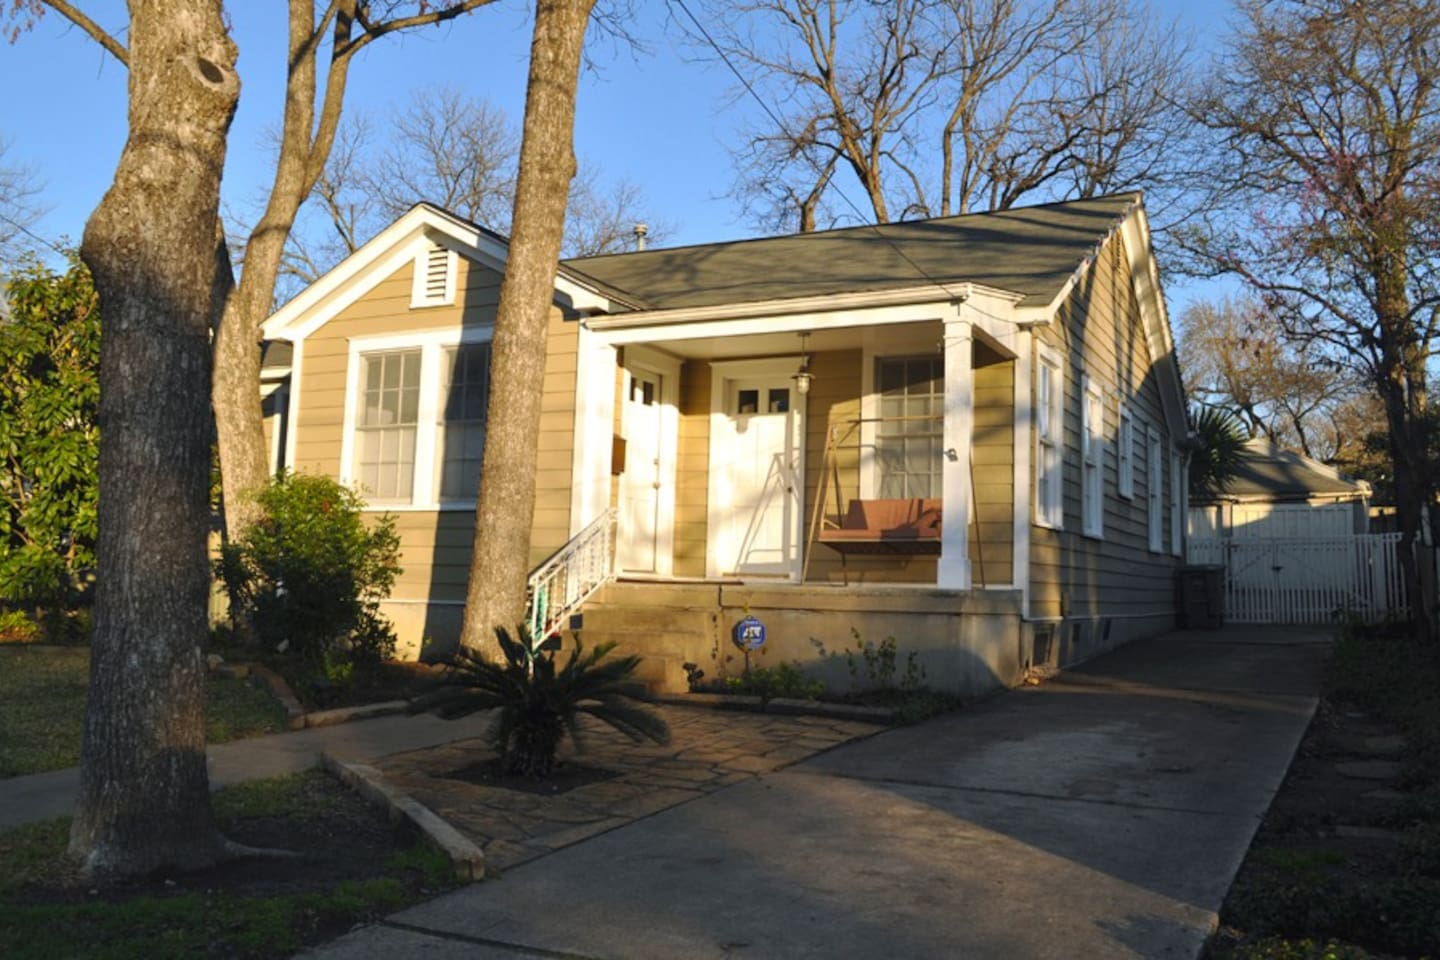 SXSW ACL F1 Cottage 1.6 Miles To DT